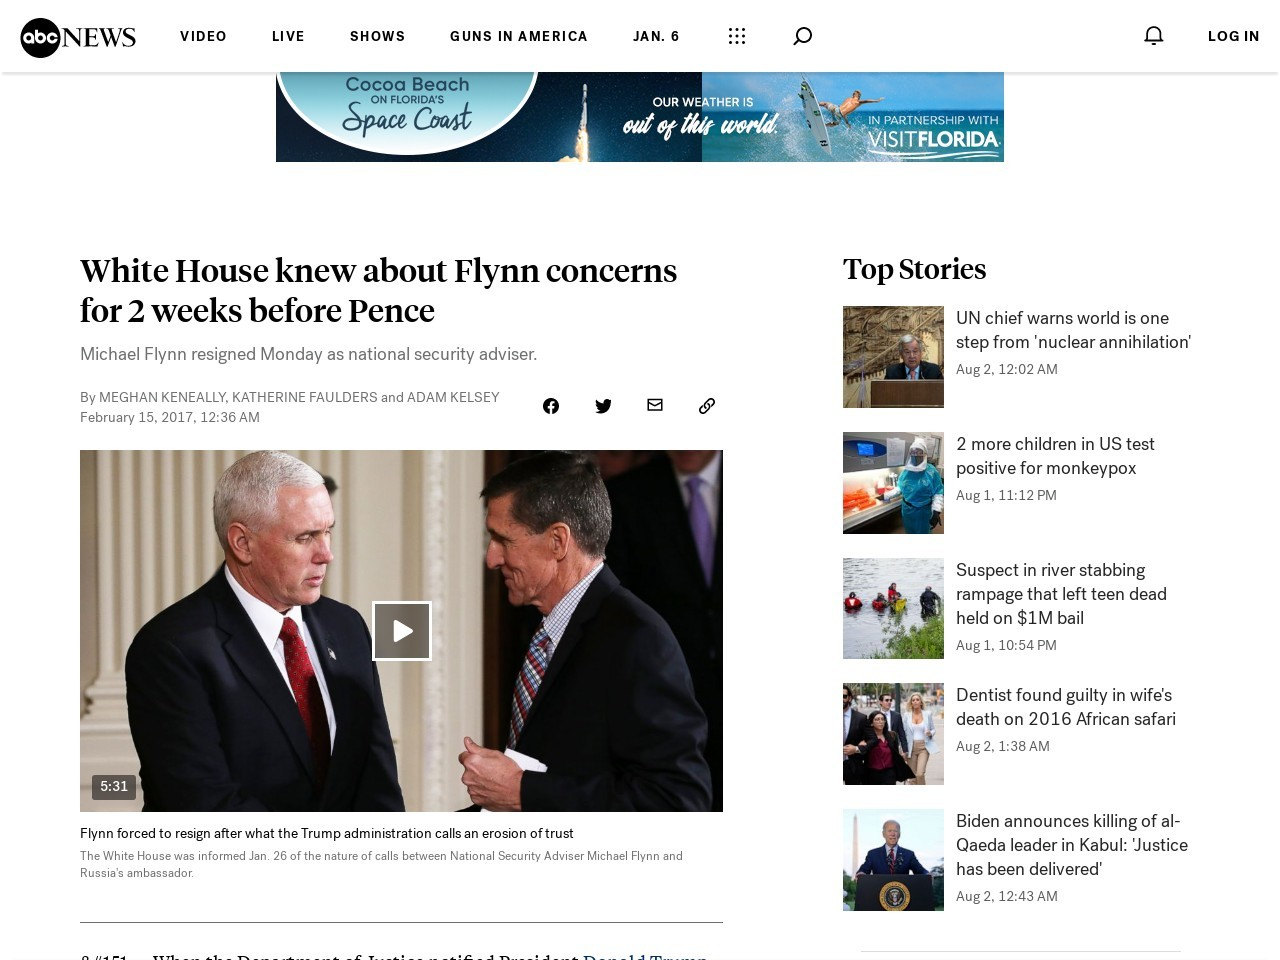 White House knew about Flynn concerns for 2 weeks before Pence